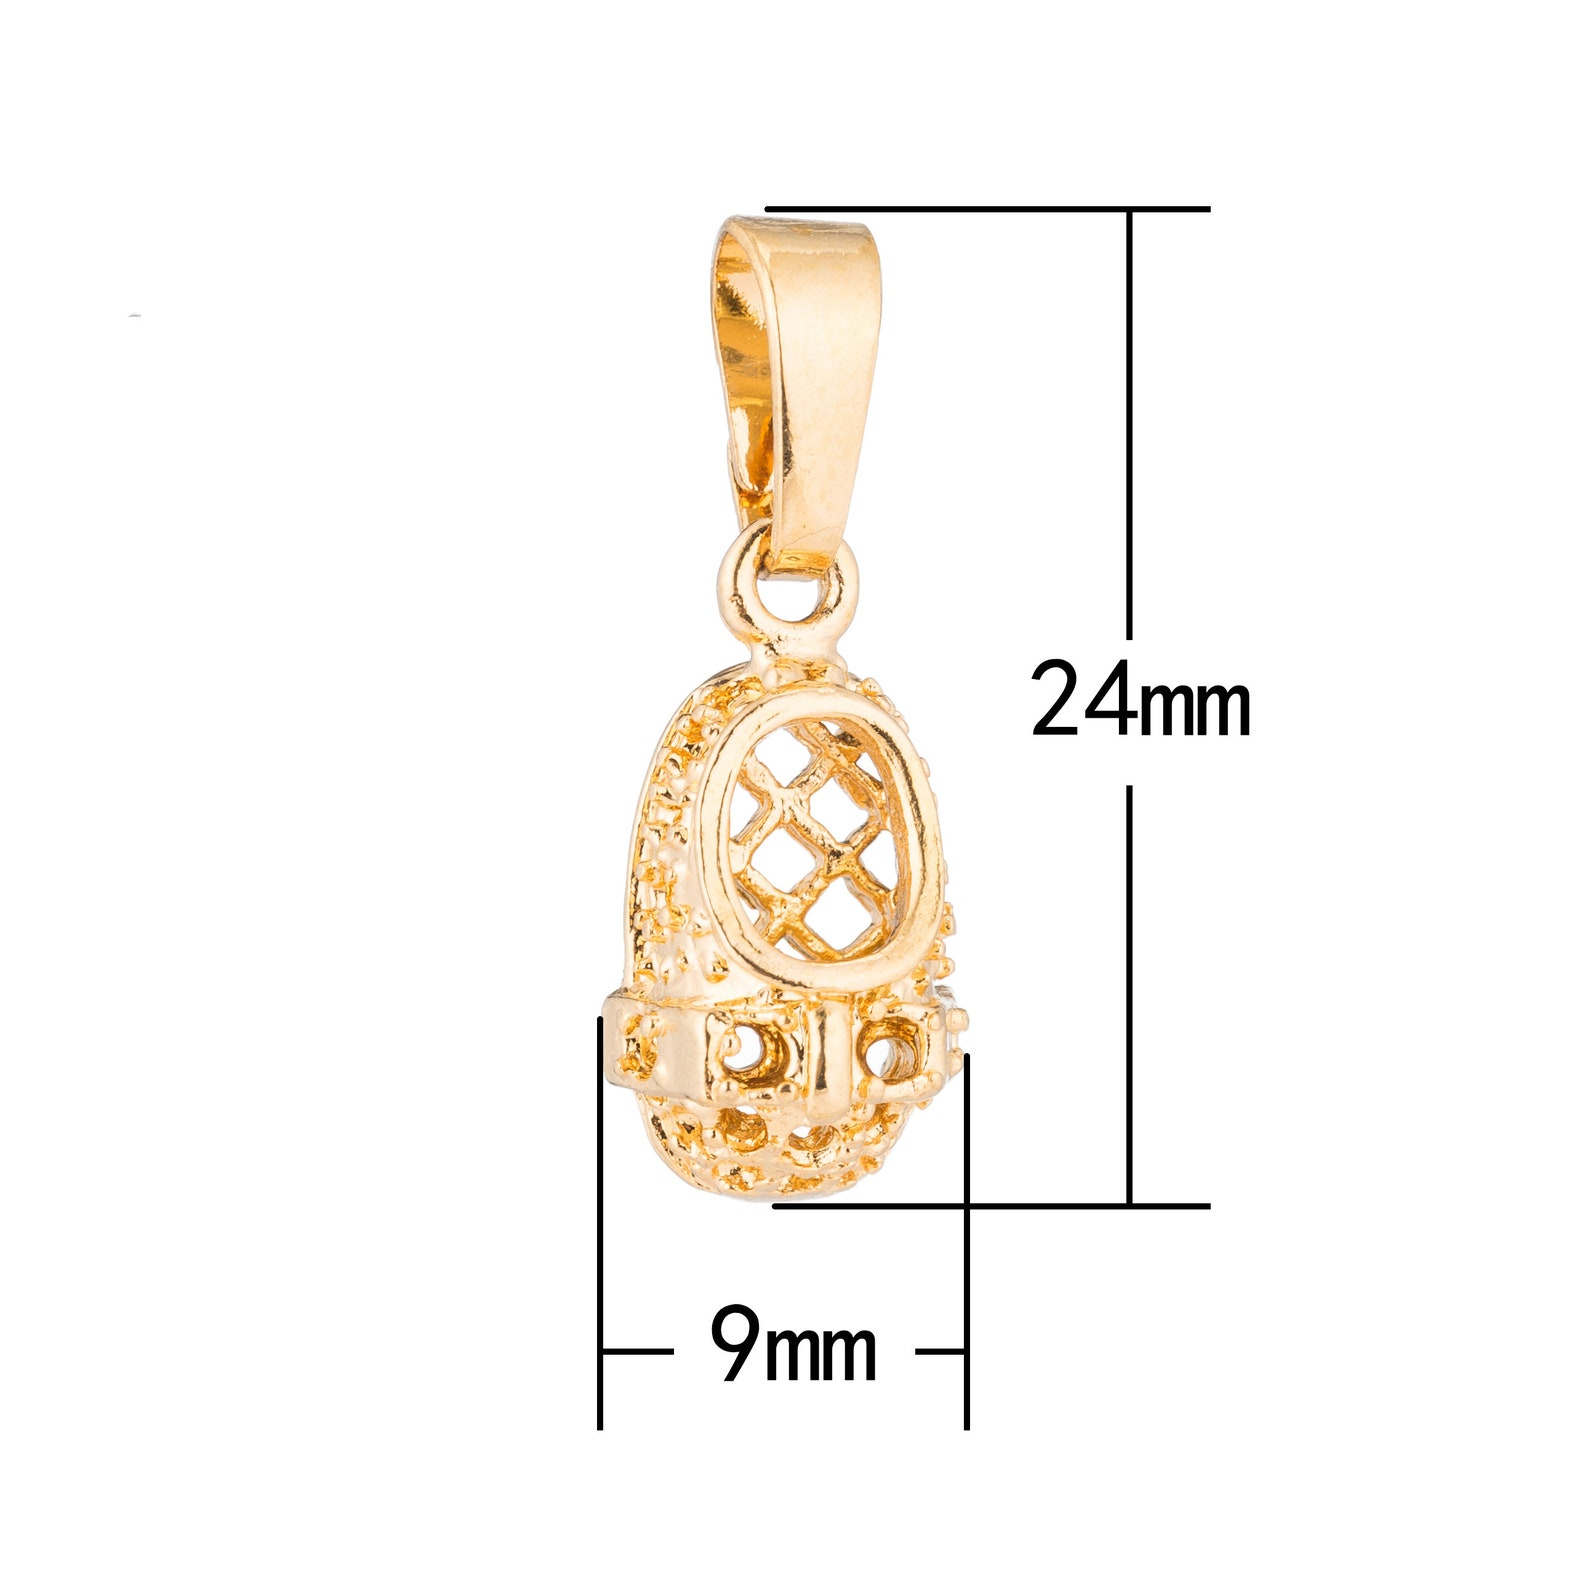 1pc gold cute shoes, ballerina, ballet, flat, fashion, girl, ladies, diy craft necklace pendant charm bead bails findings for je